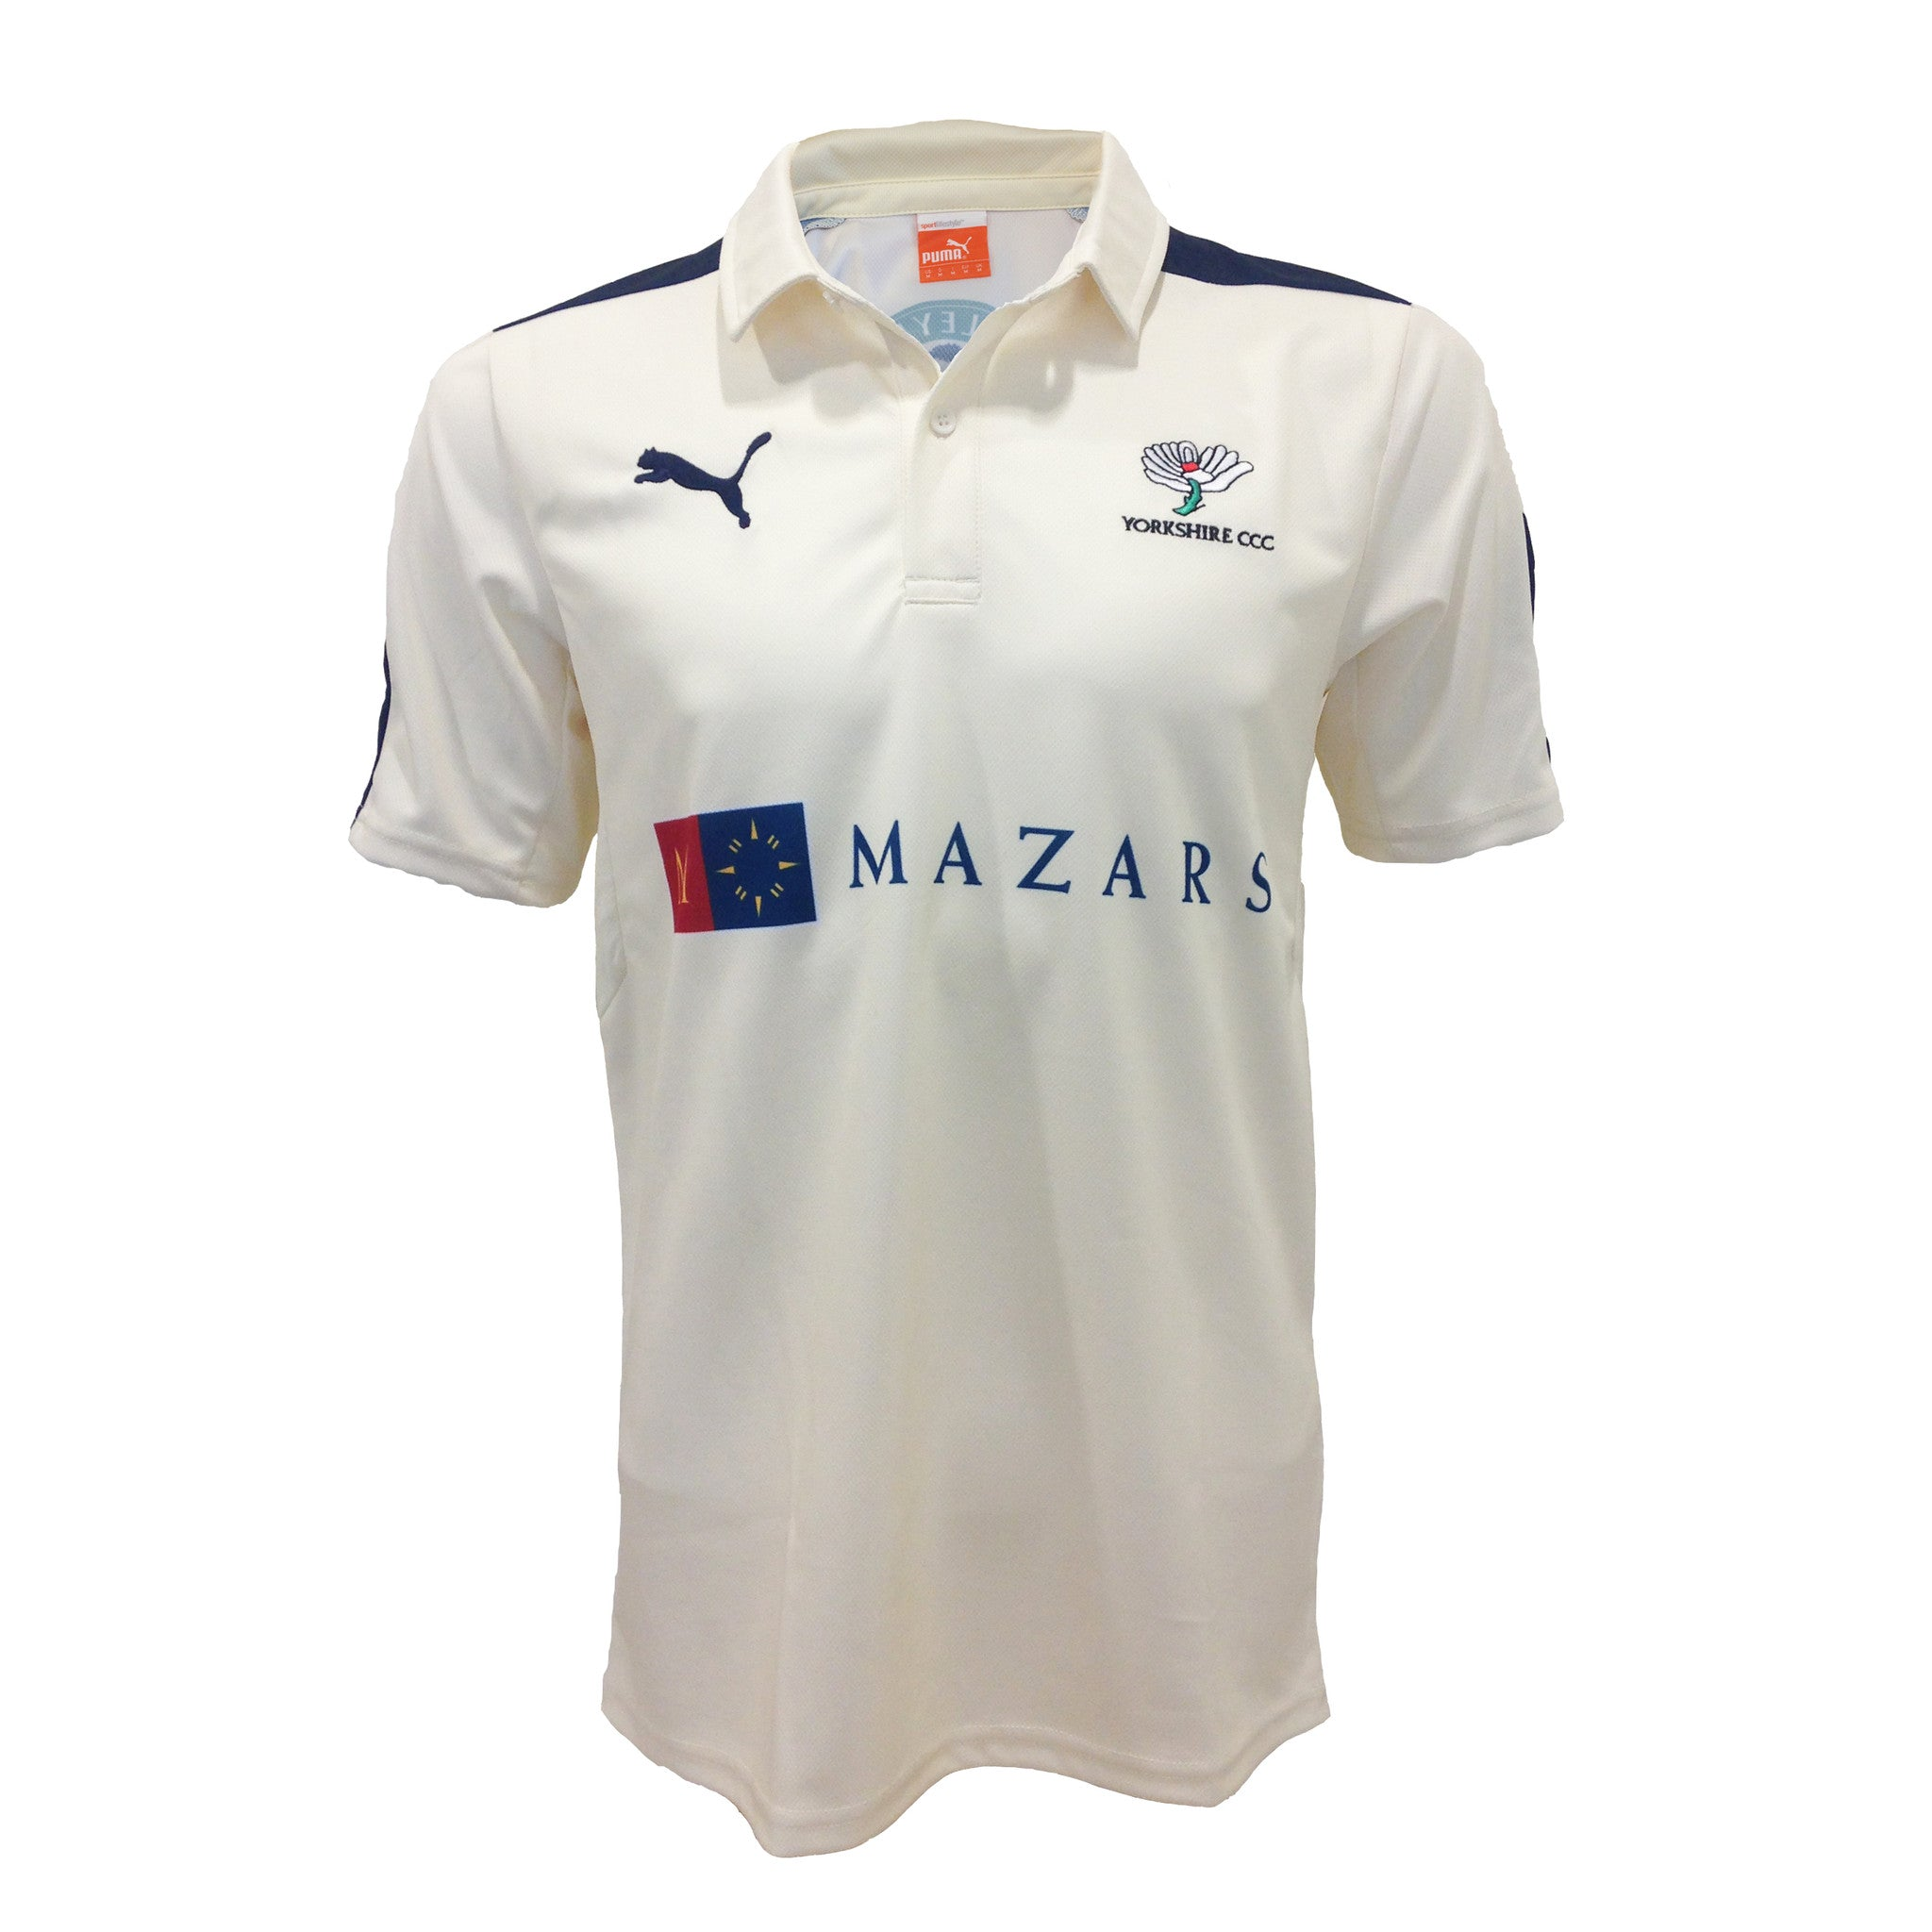 2016 Puma Yorkshire County Championship Shirt - Adults- NOW 36.00 Juniors (up to age 12) - NOW 32.00